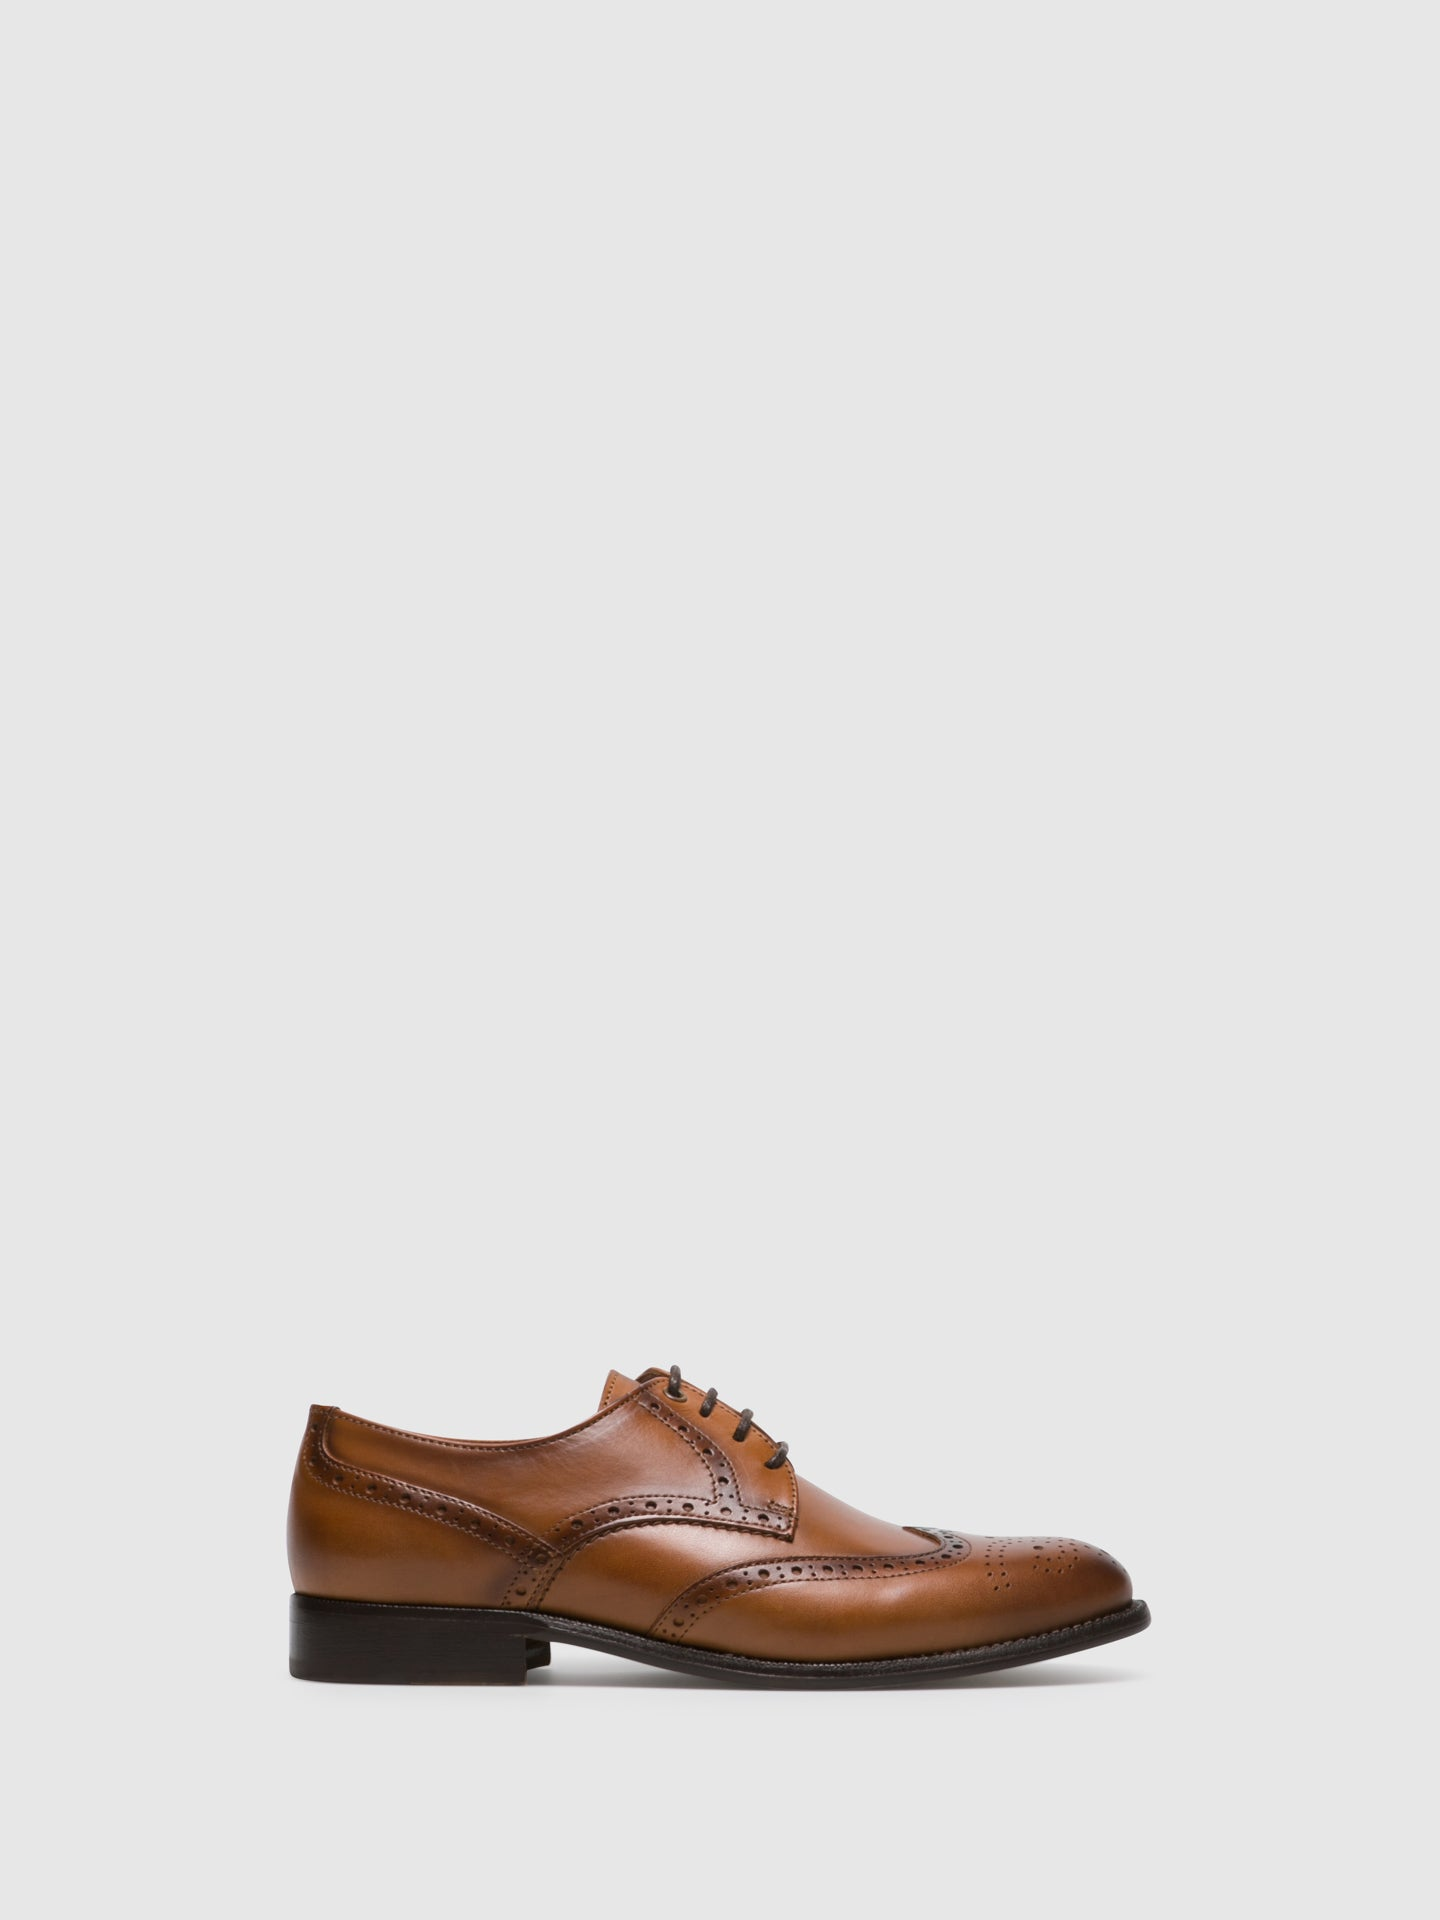 Foreva Zapatos Oxford en color Camel